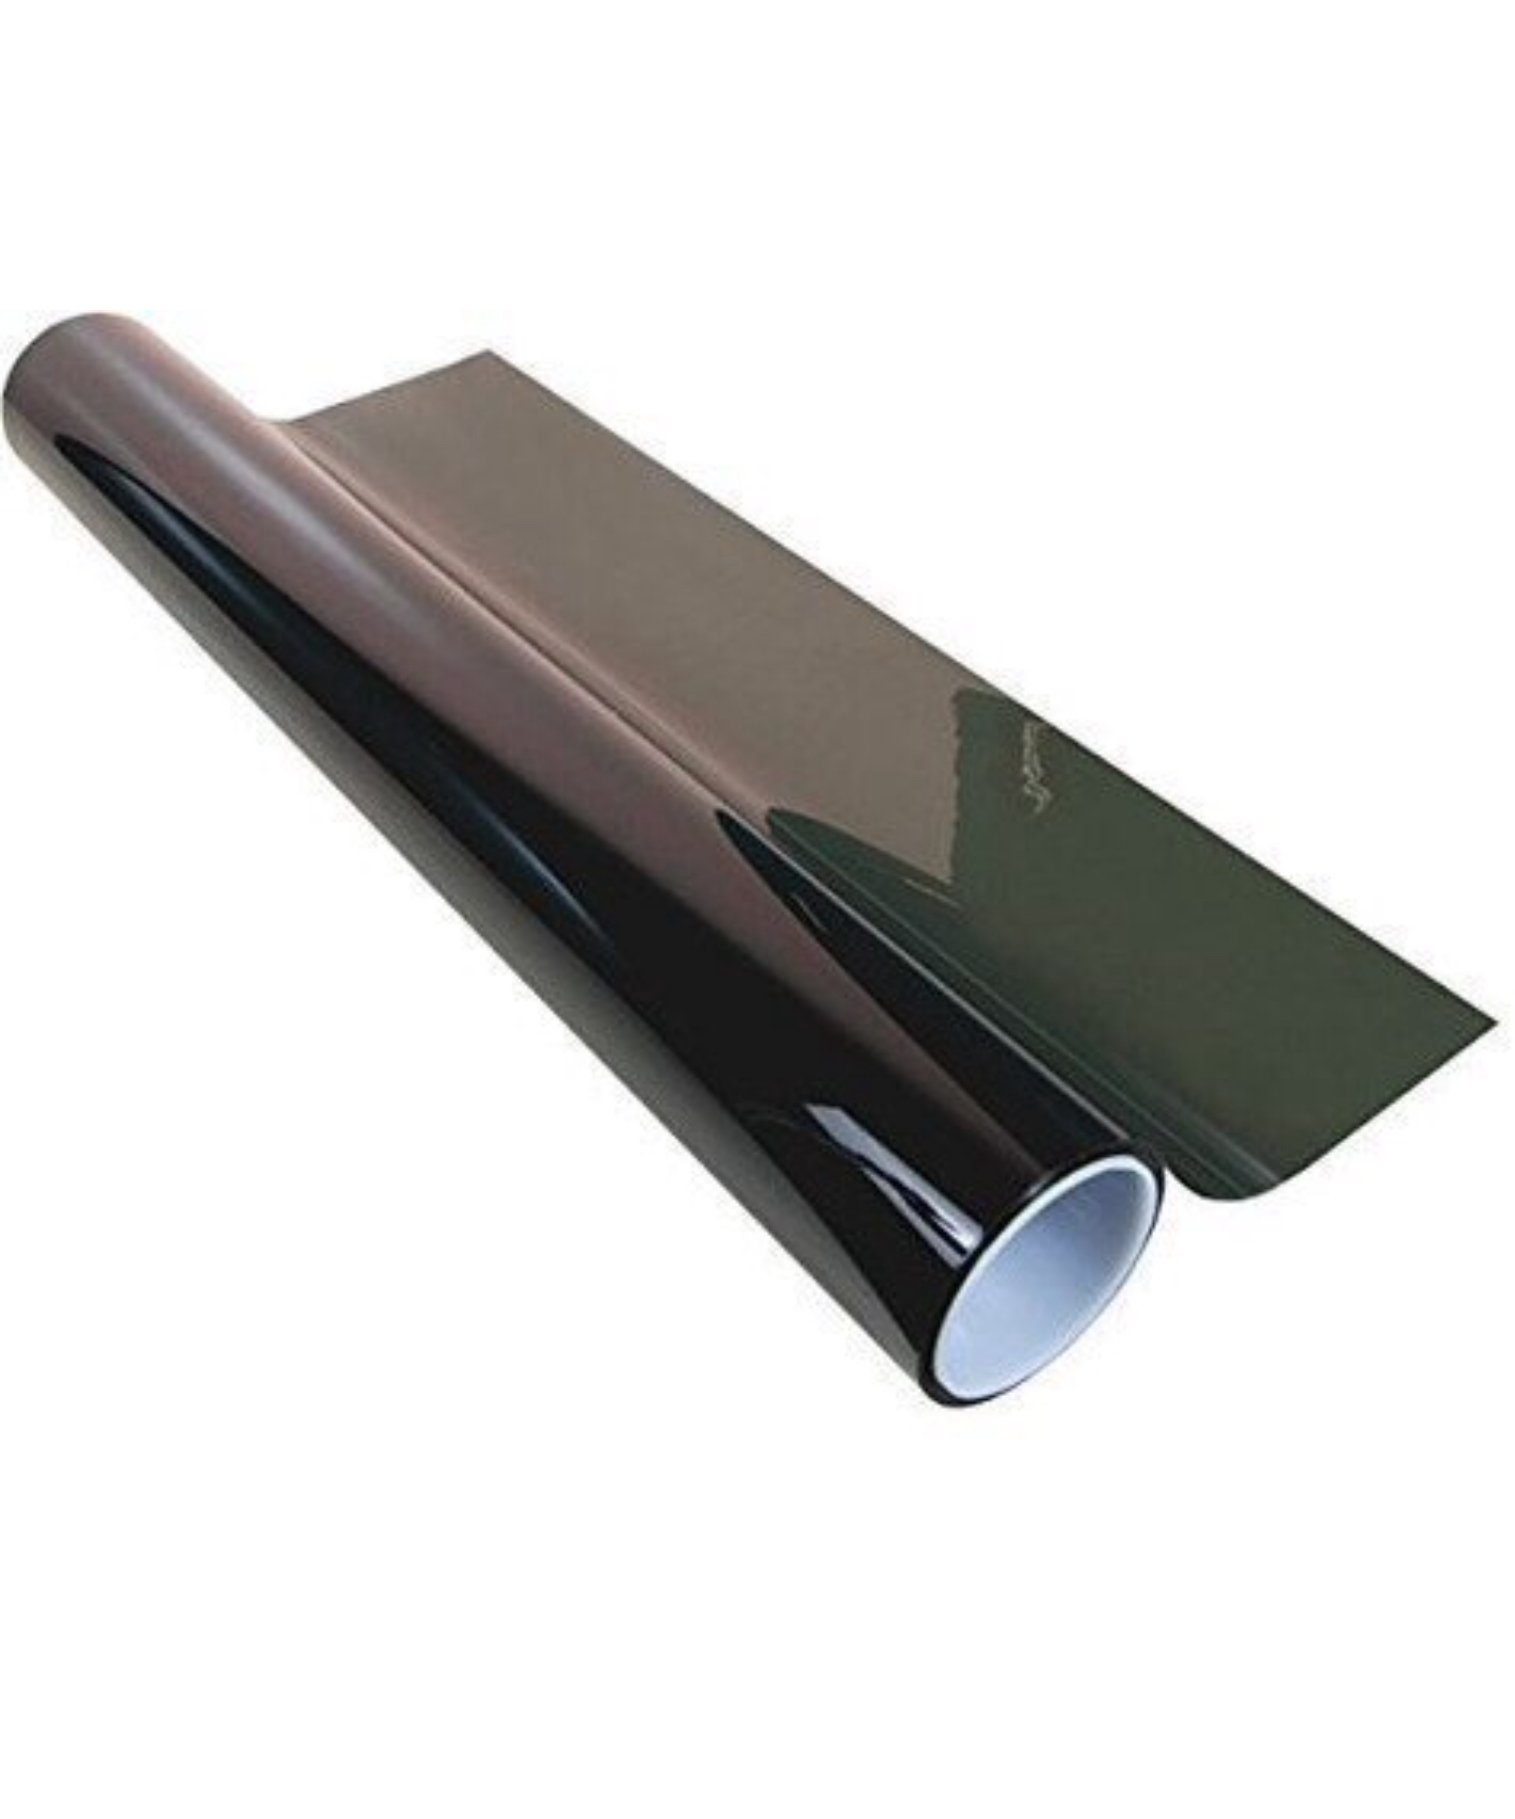 Diablo 2 Ply Window Tint Double Ply Professional Dark Charcoal 5% Tint Roll Self Adhesive Tint Film Roll for Car Windows - 24'' X 100'